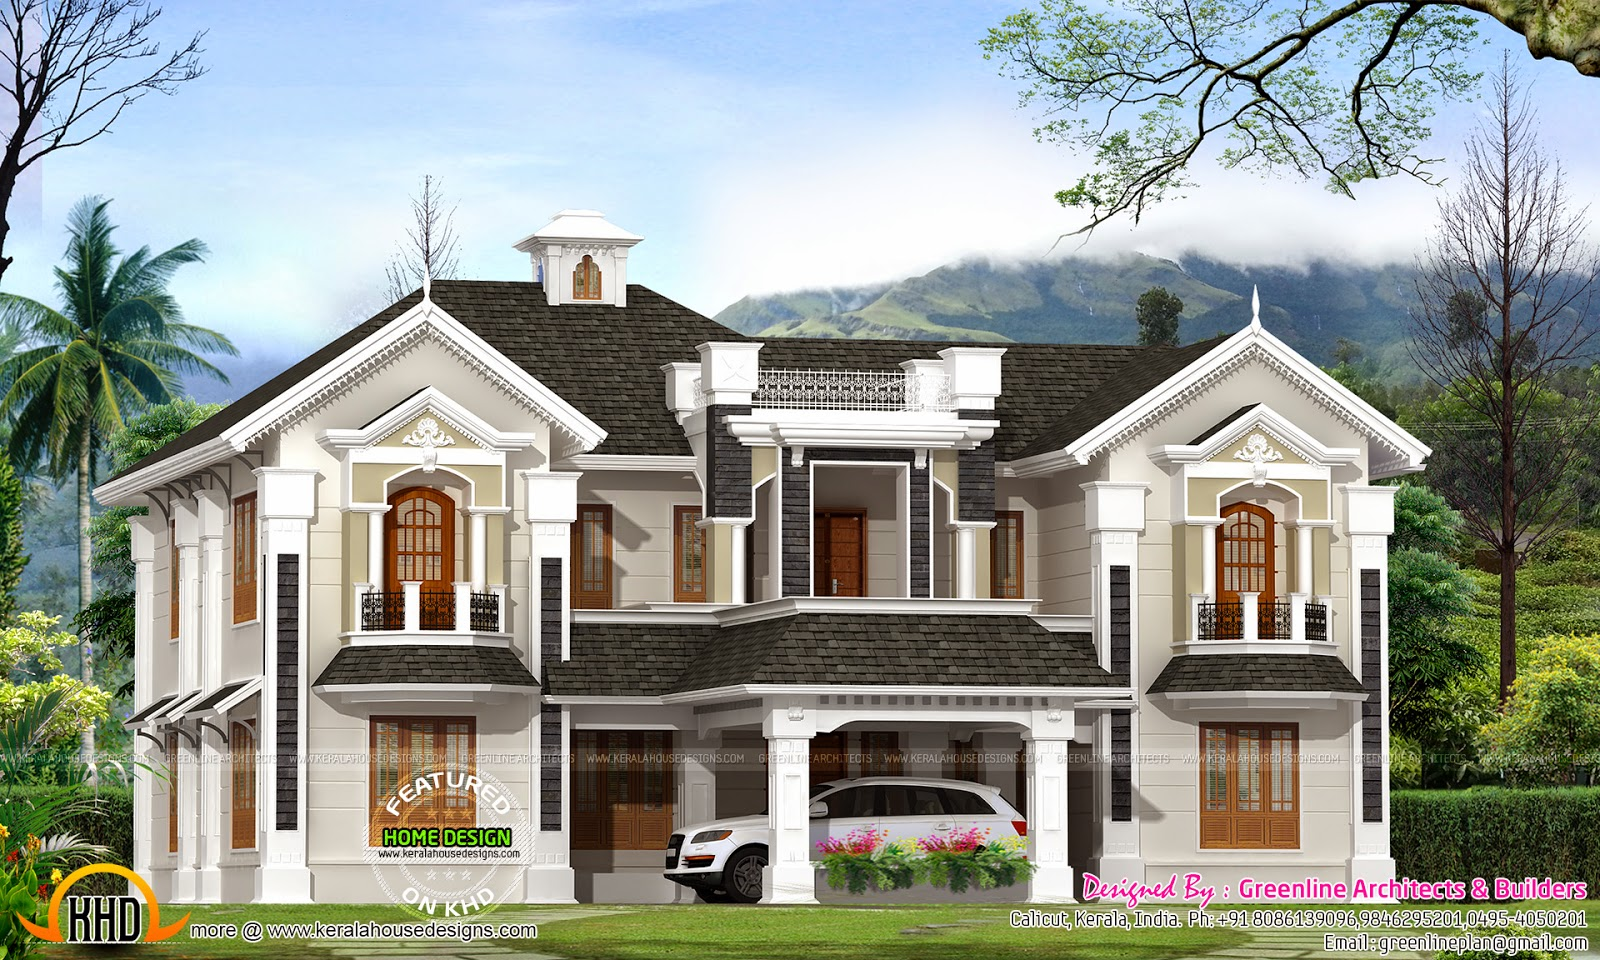 Colonial style house in kerala kerala home design and for House plan design kerala style